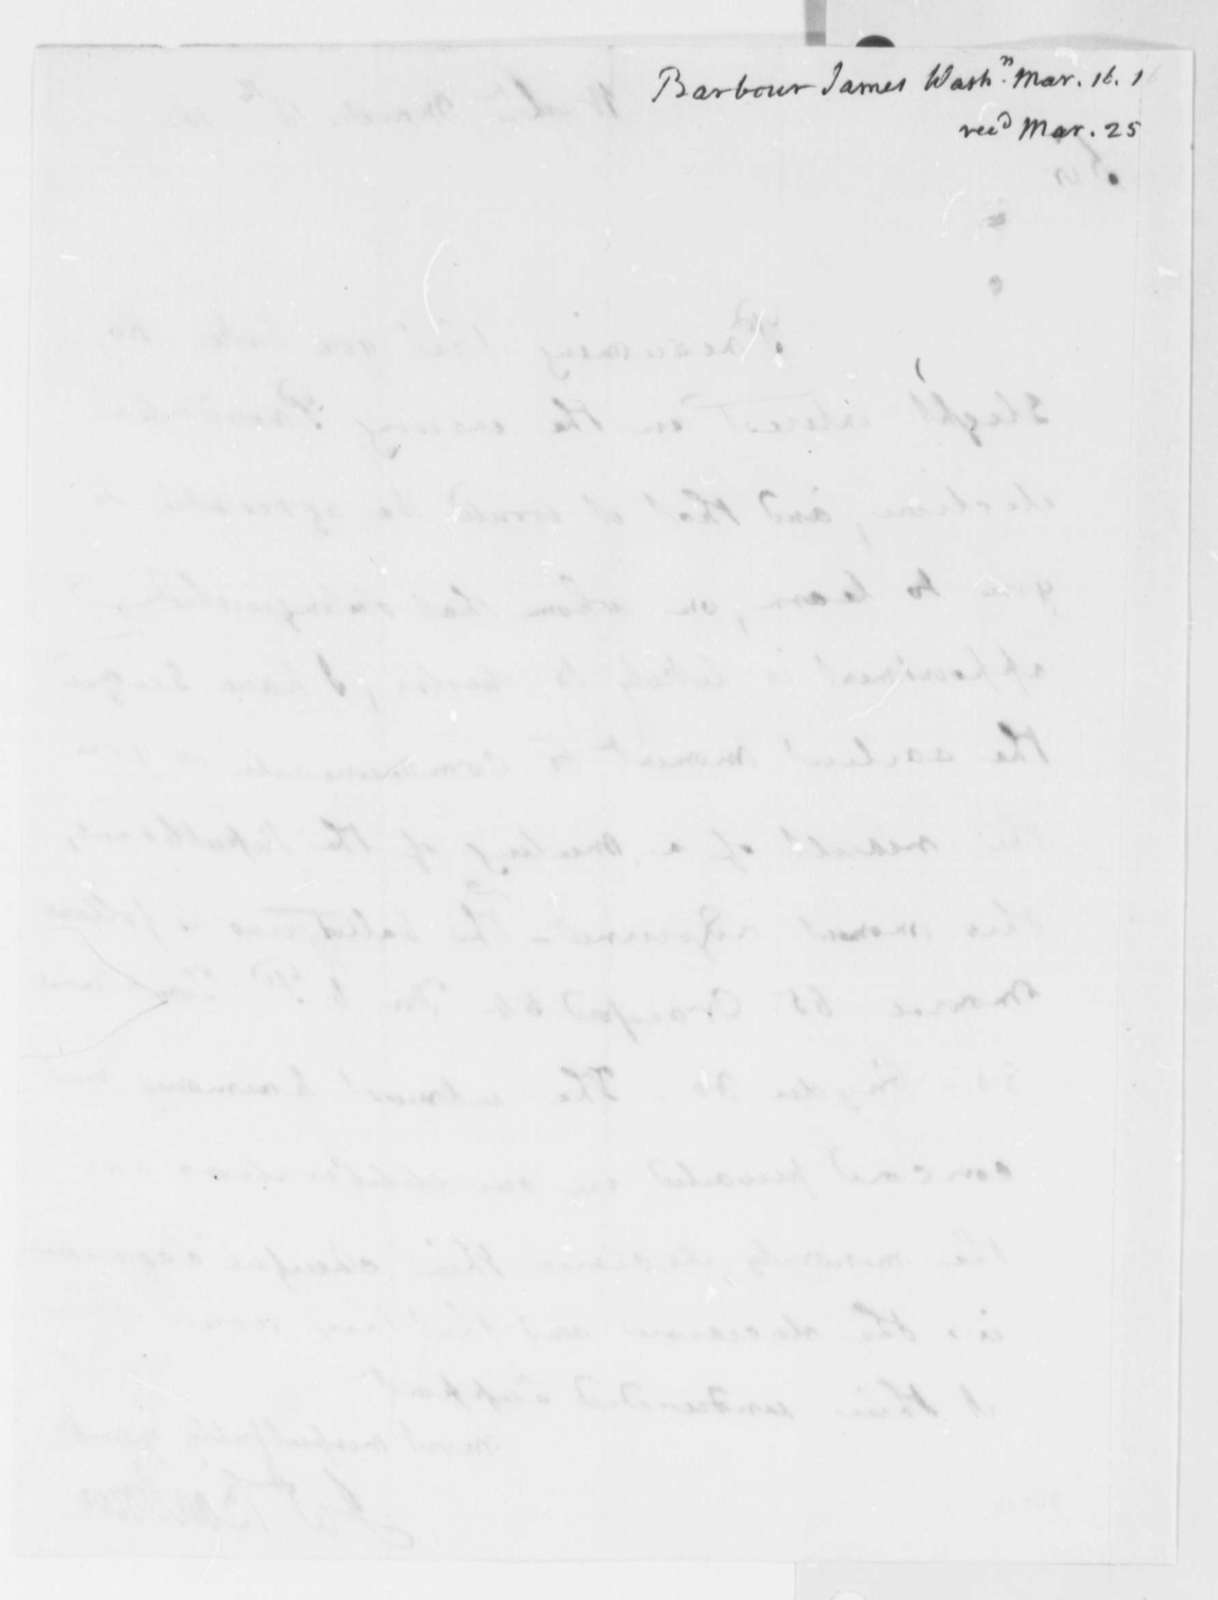 James Barbour to Thomas Jefferson, March 15, 1816